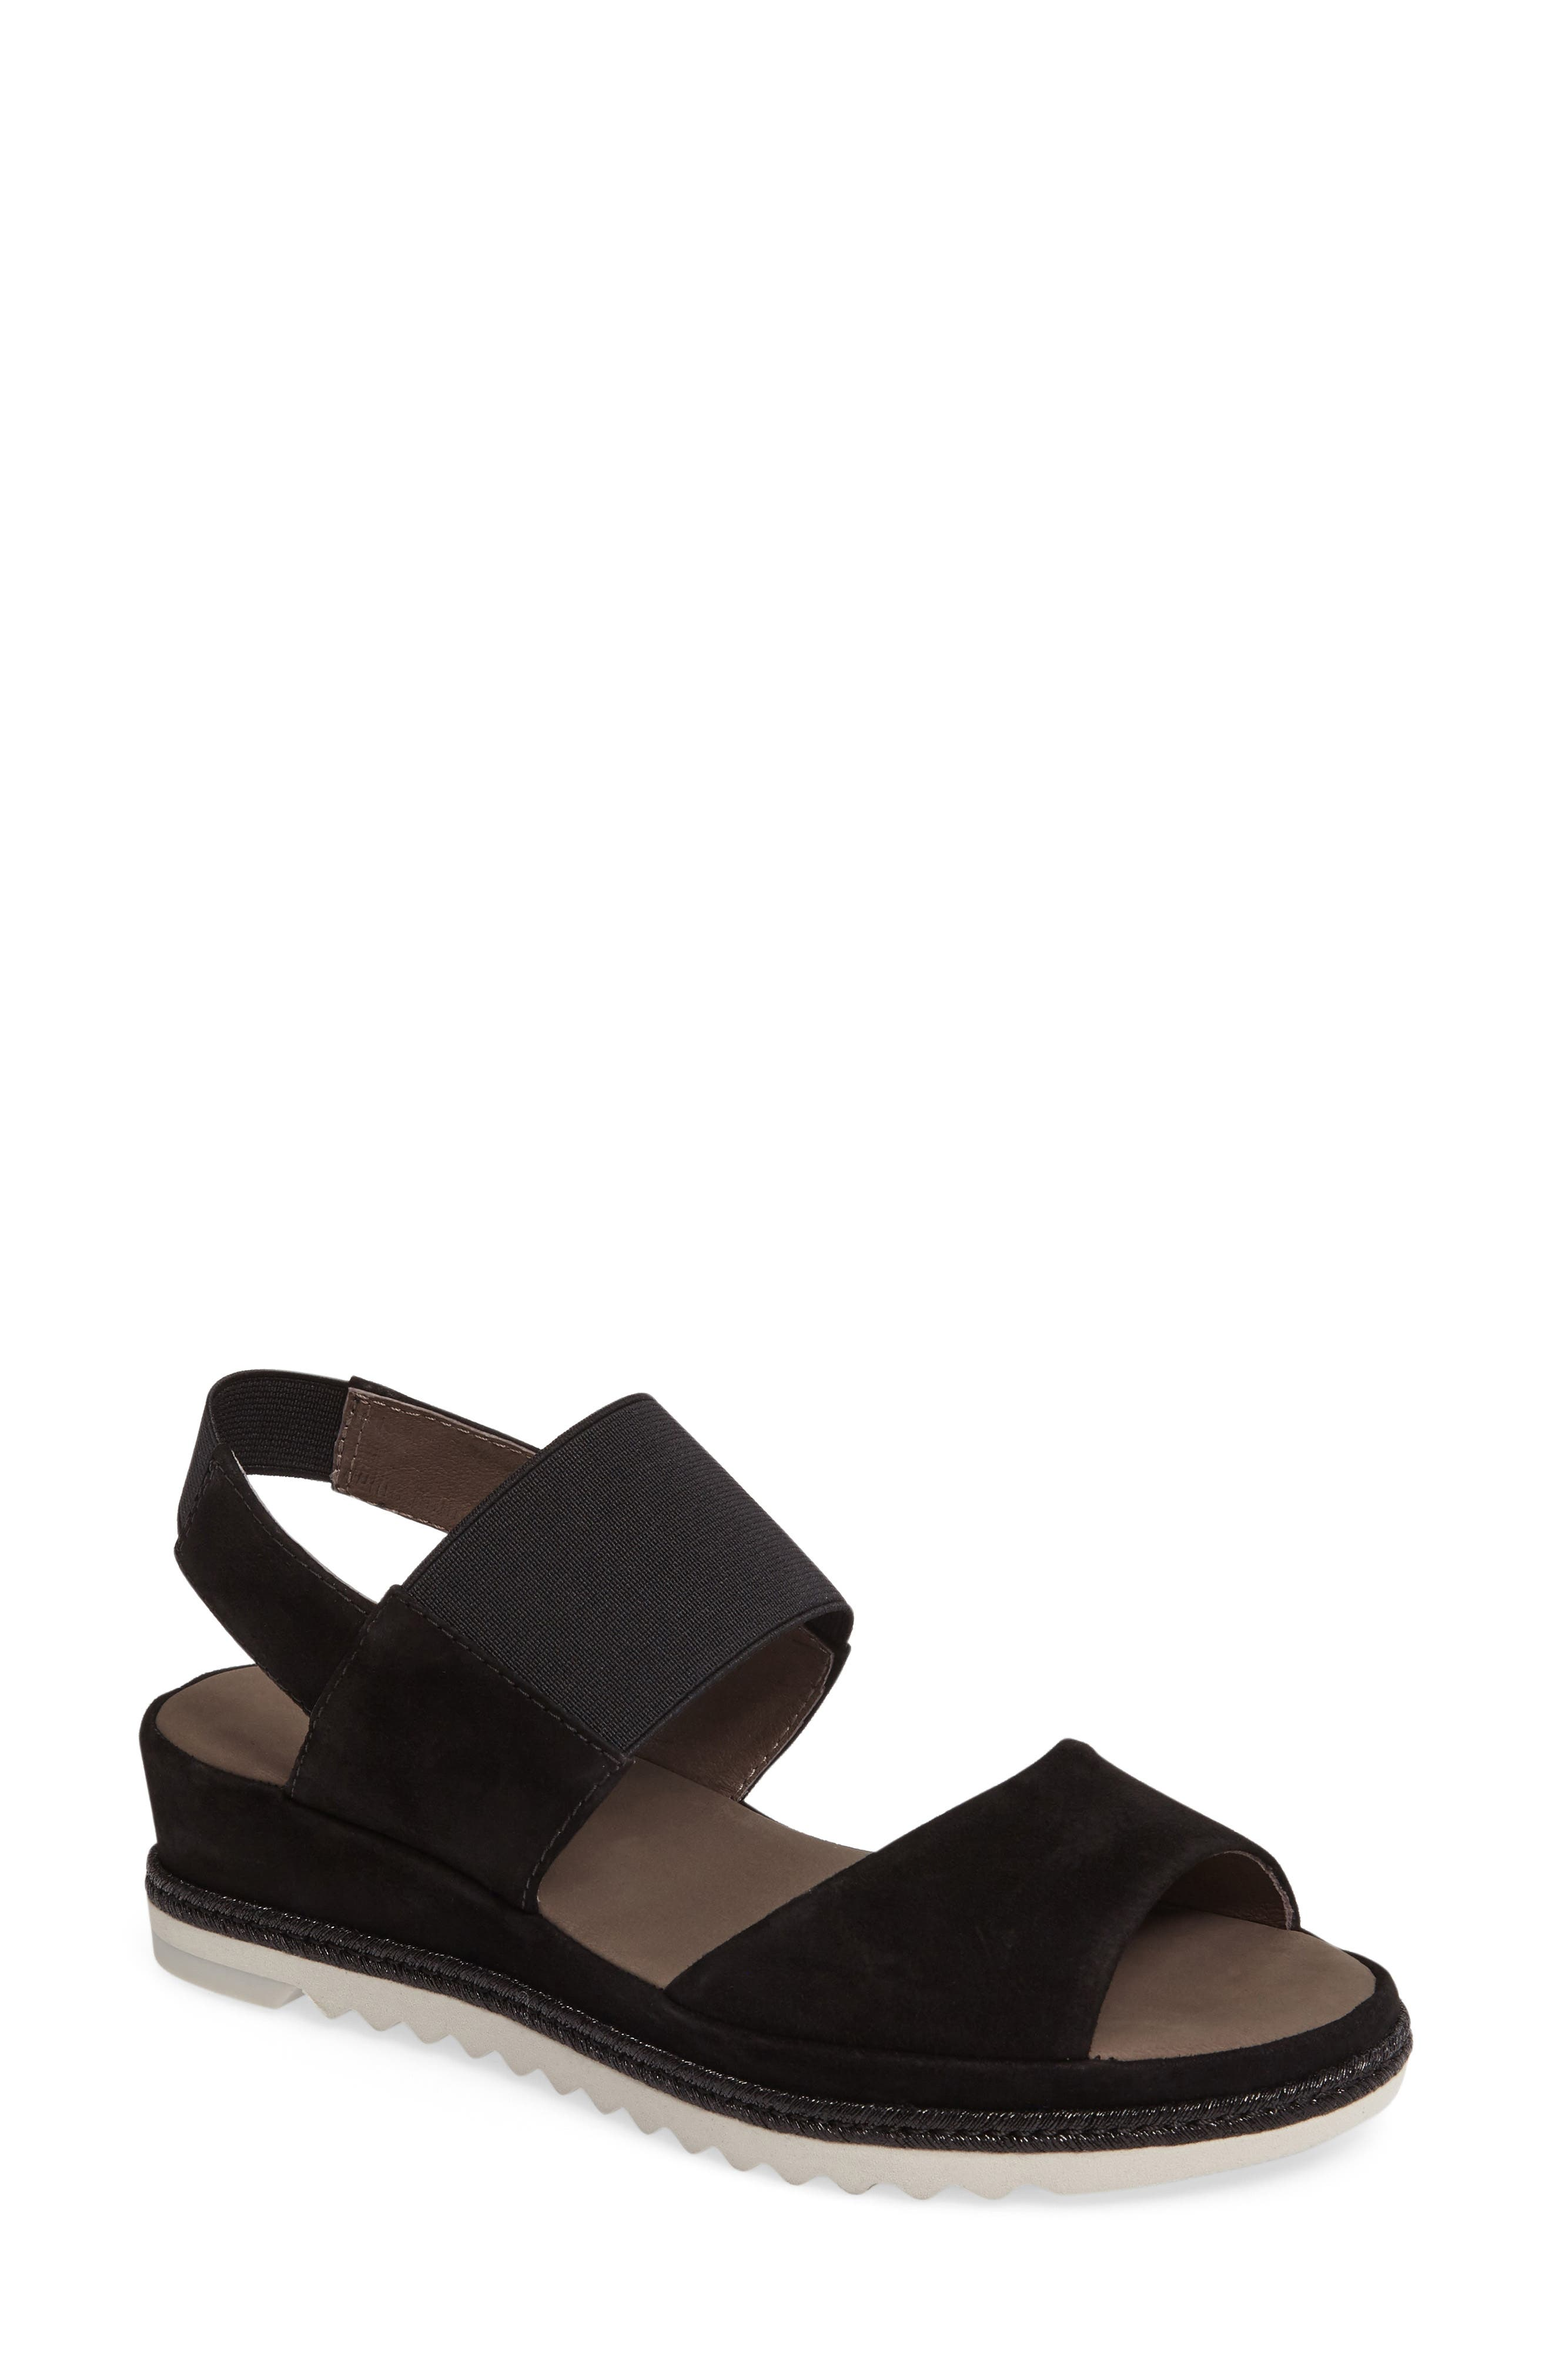 Gabor Low Wedge Sandal (Women)